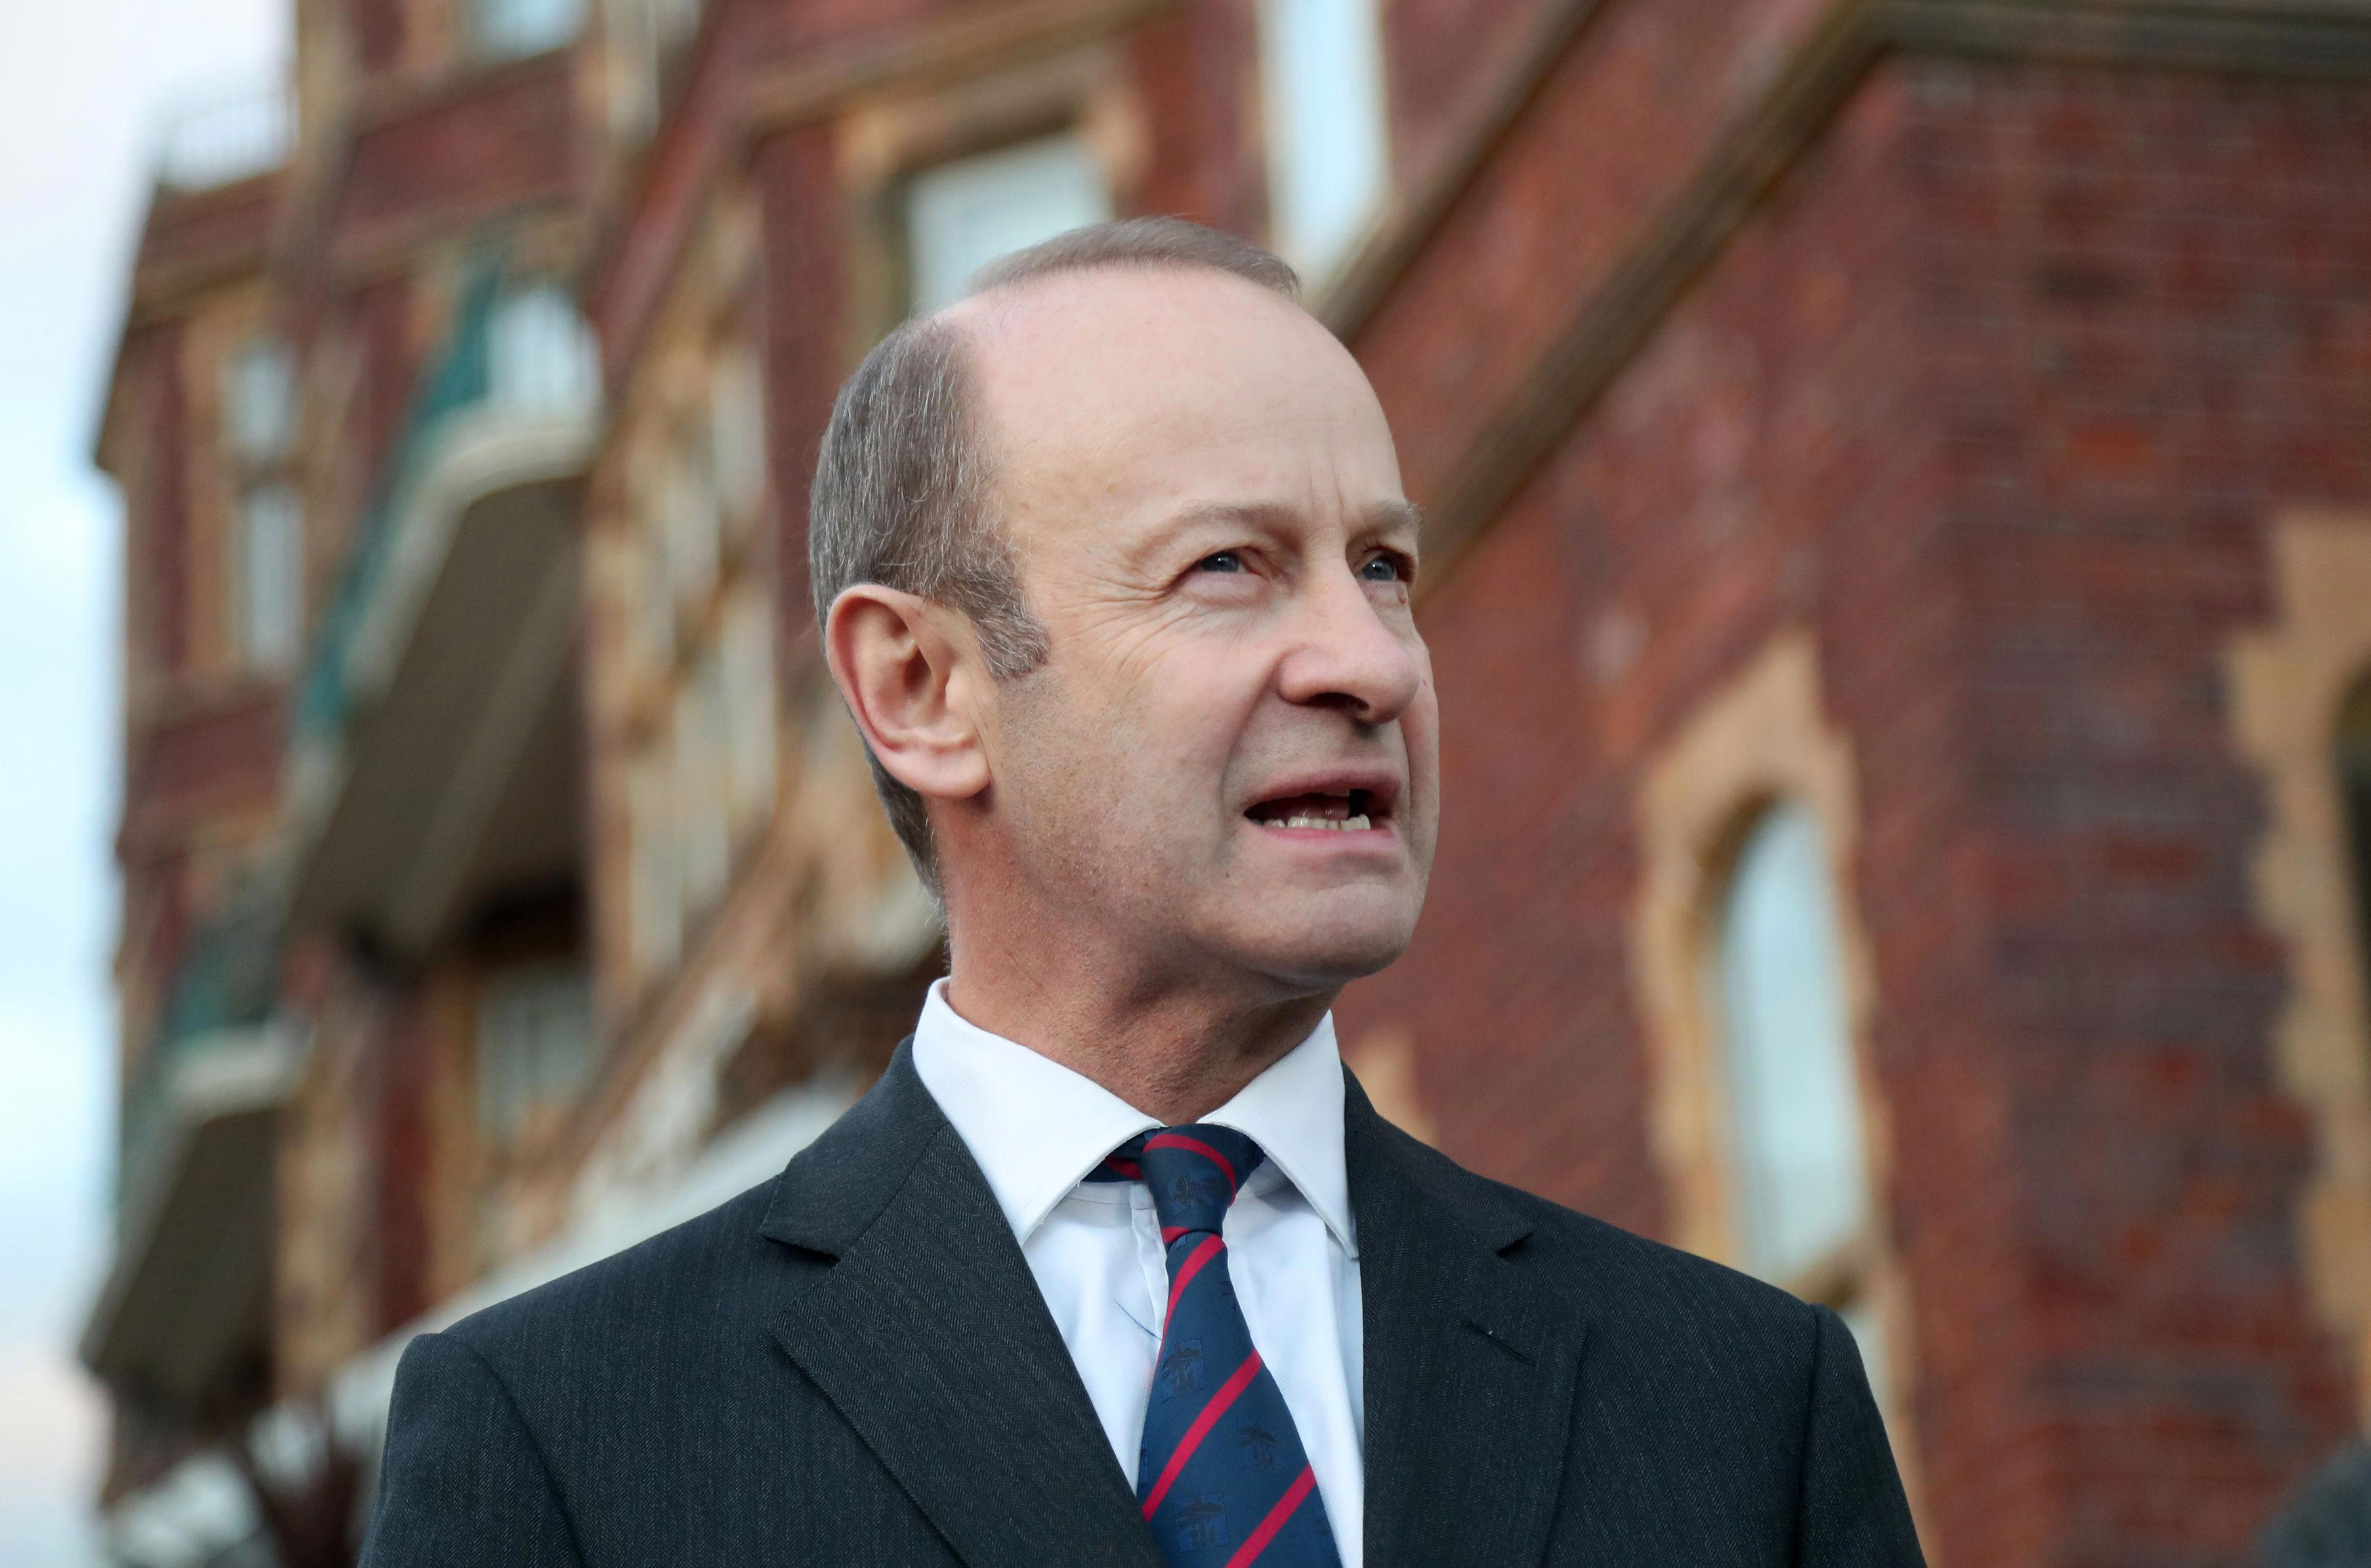 Ukip leader Henry Bolton given £10,000 expenses in the last month – but now claims he's skint